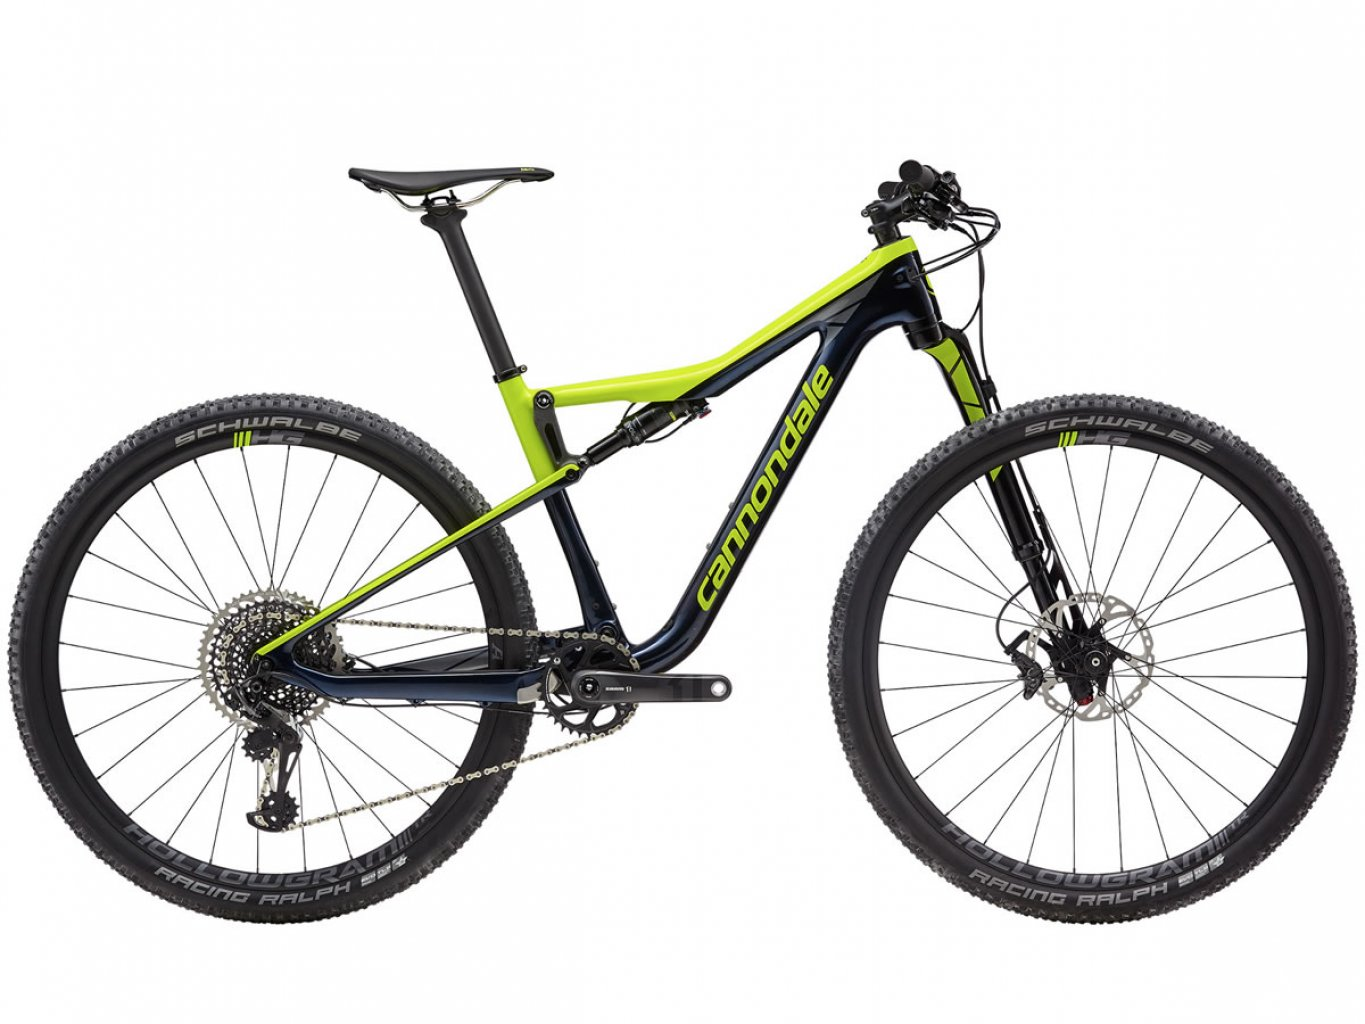 CANNONDALE Scalpel Si 29 Crb 2 MDN 2019